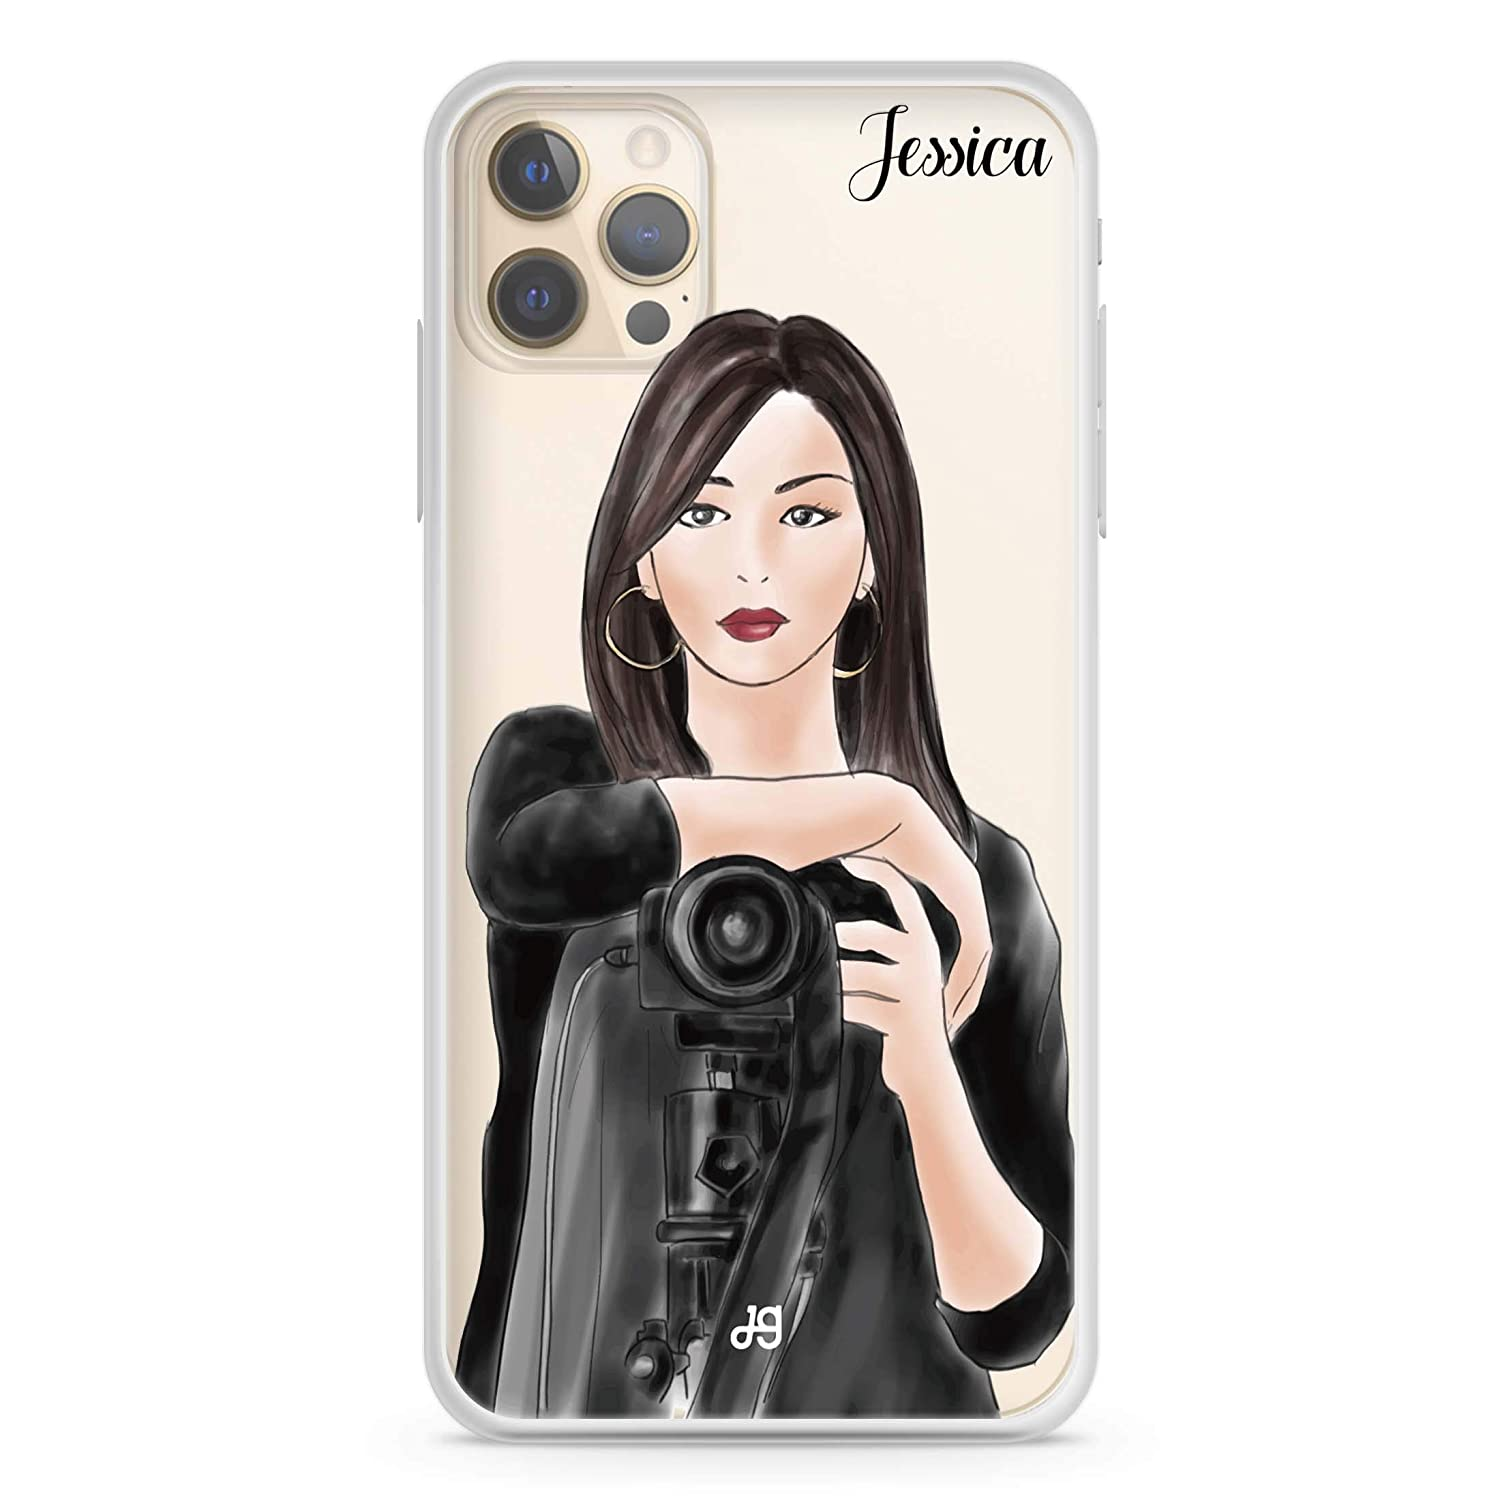 Camera girl III iPhone Max 85% OFF 12 Pro Soft Case iP Limited time sale Clear Max